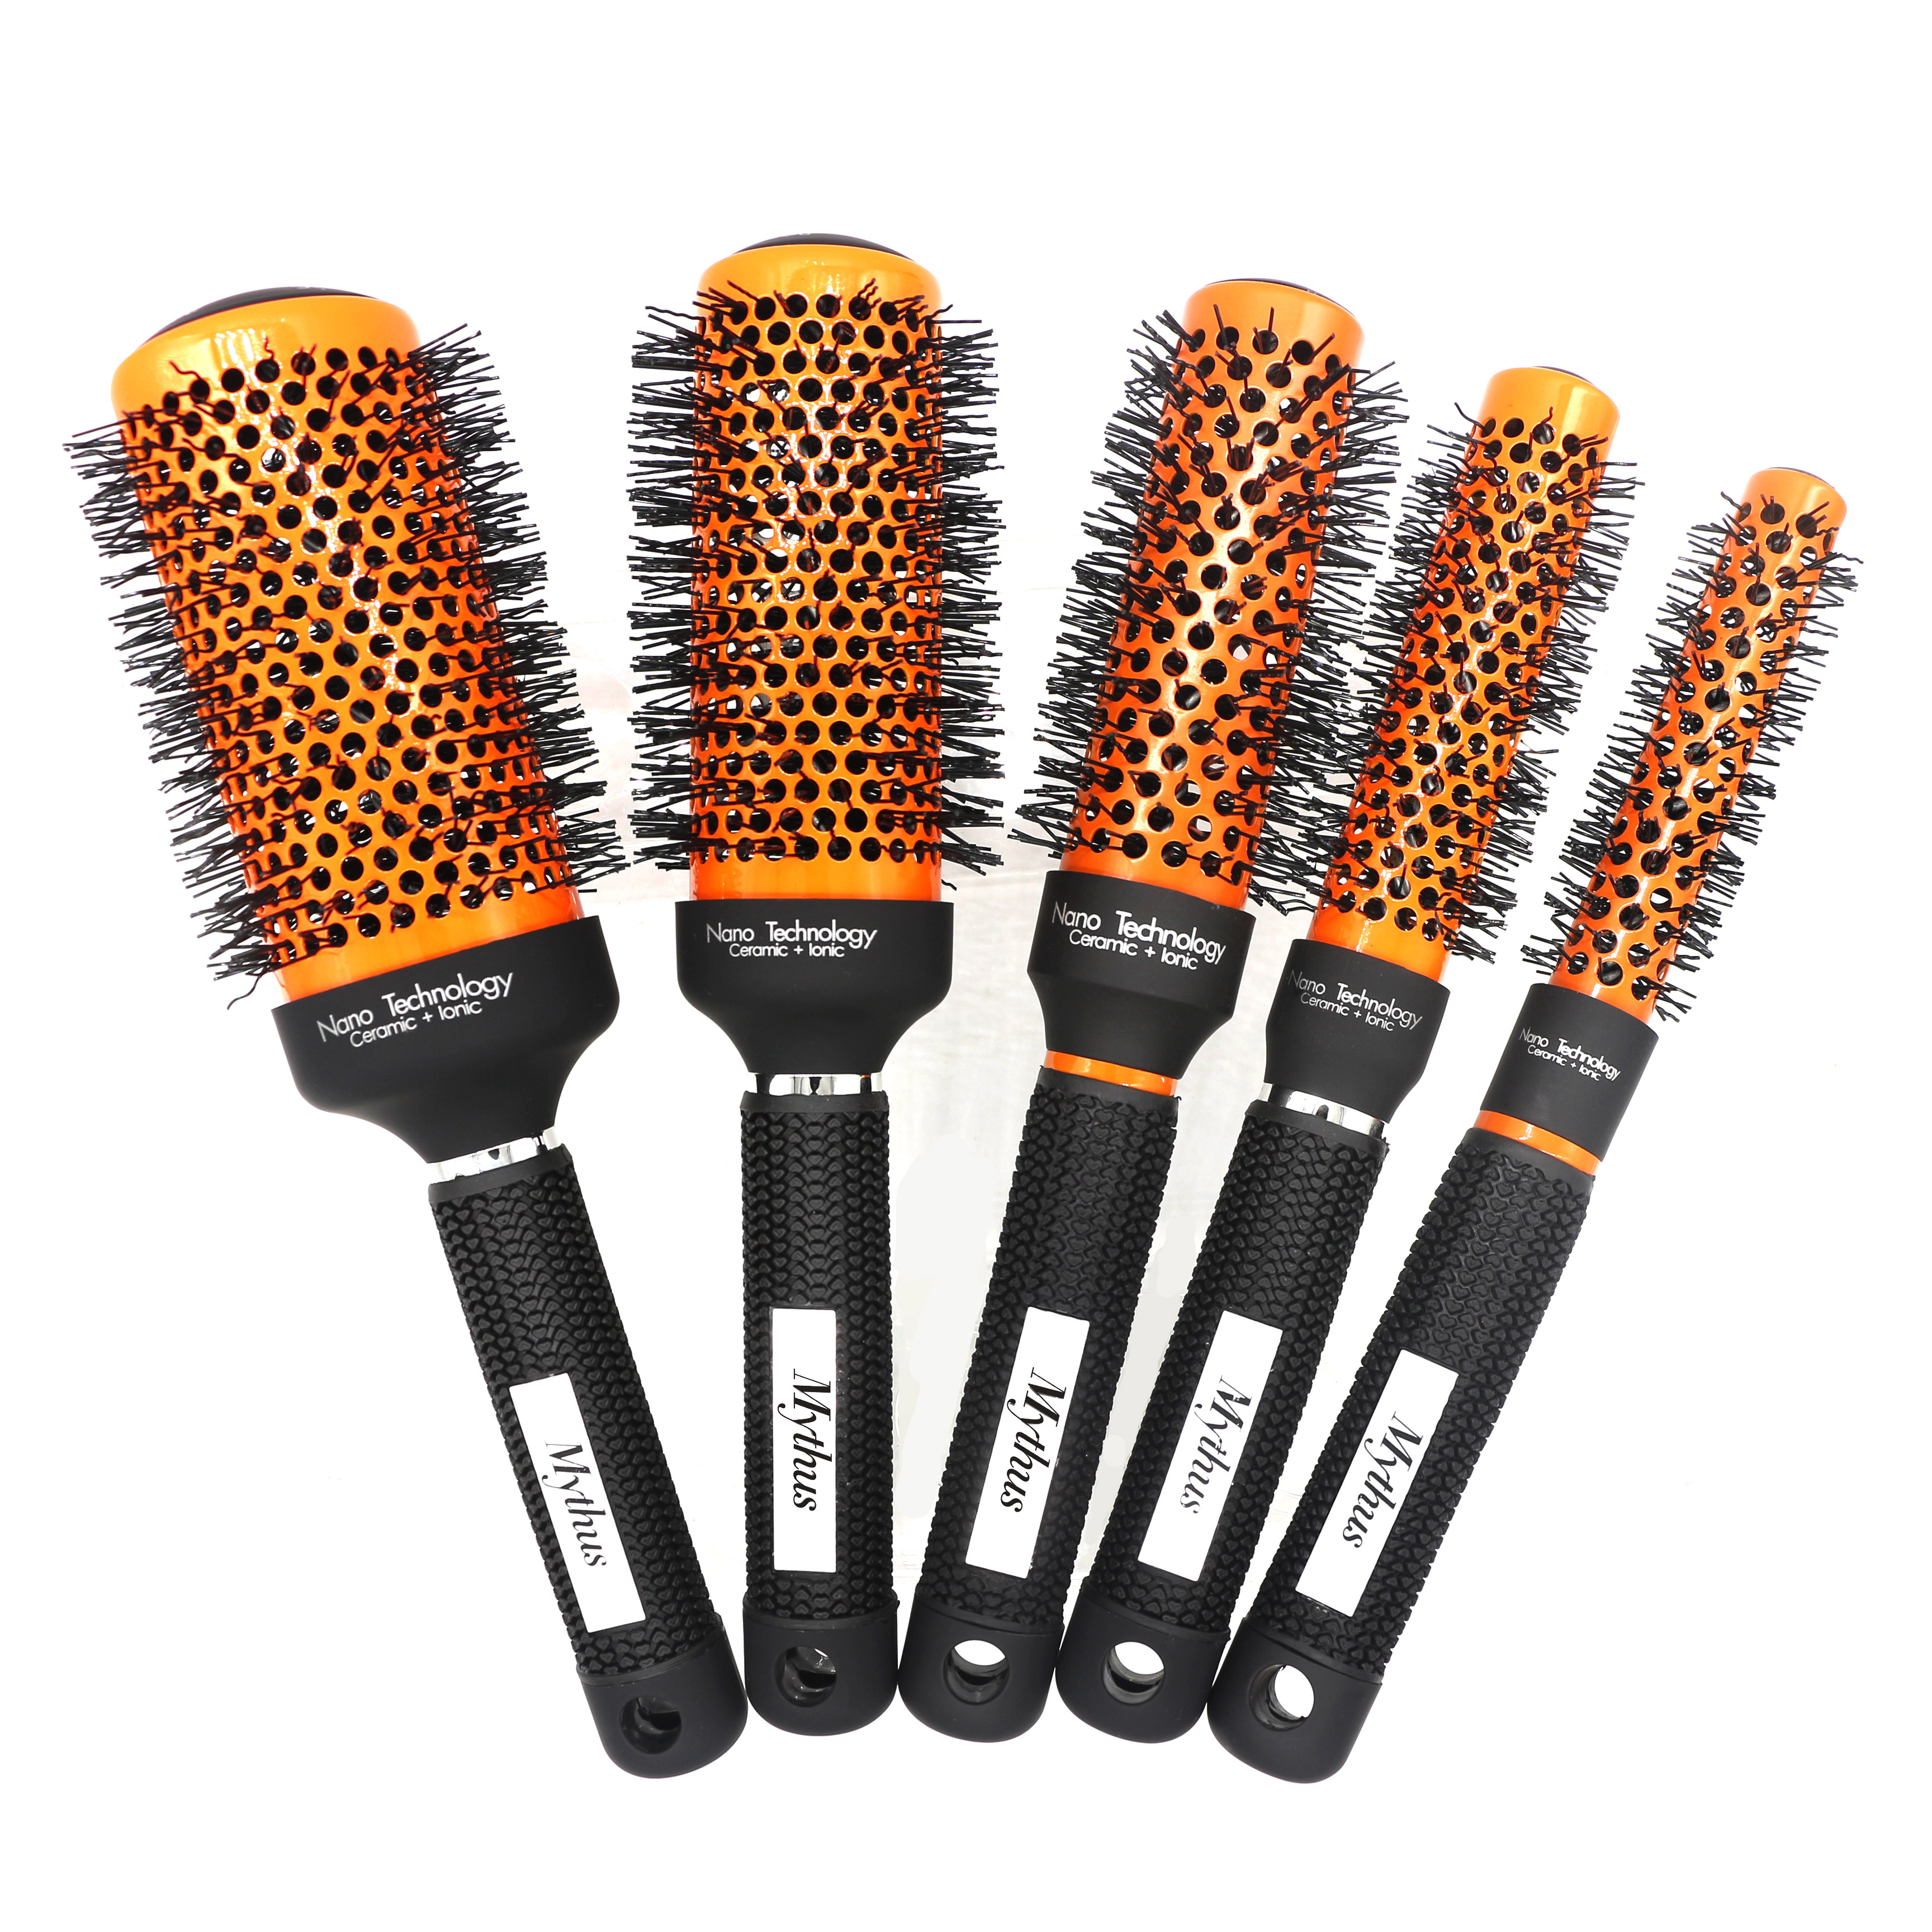 Mythus Orange Hairdressing Round Brush Ceramic 5 Saiz Salon Hairstyling Comb Untuk Curls Rambut Ionic Hair Brush Do not Damage Hair